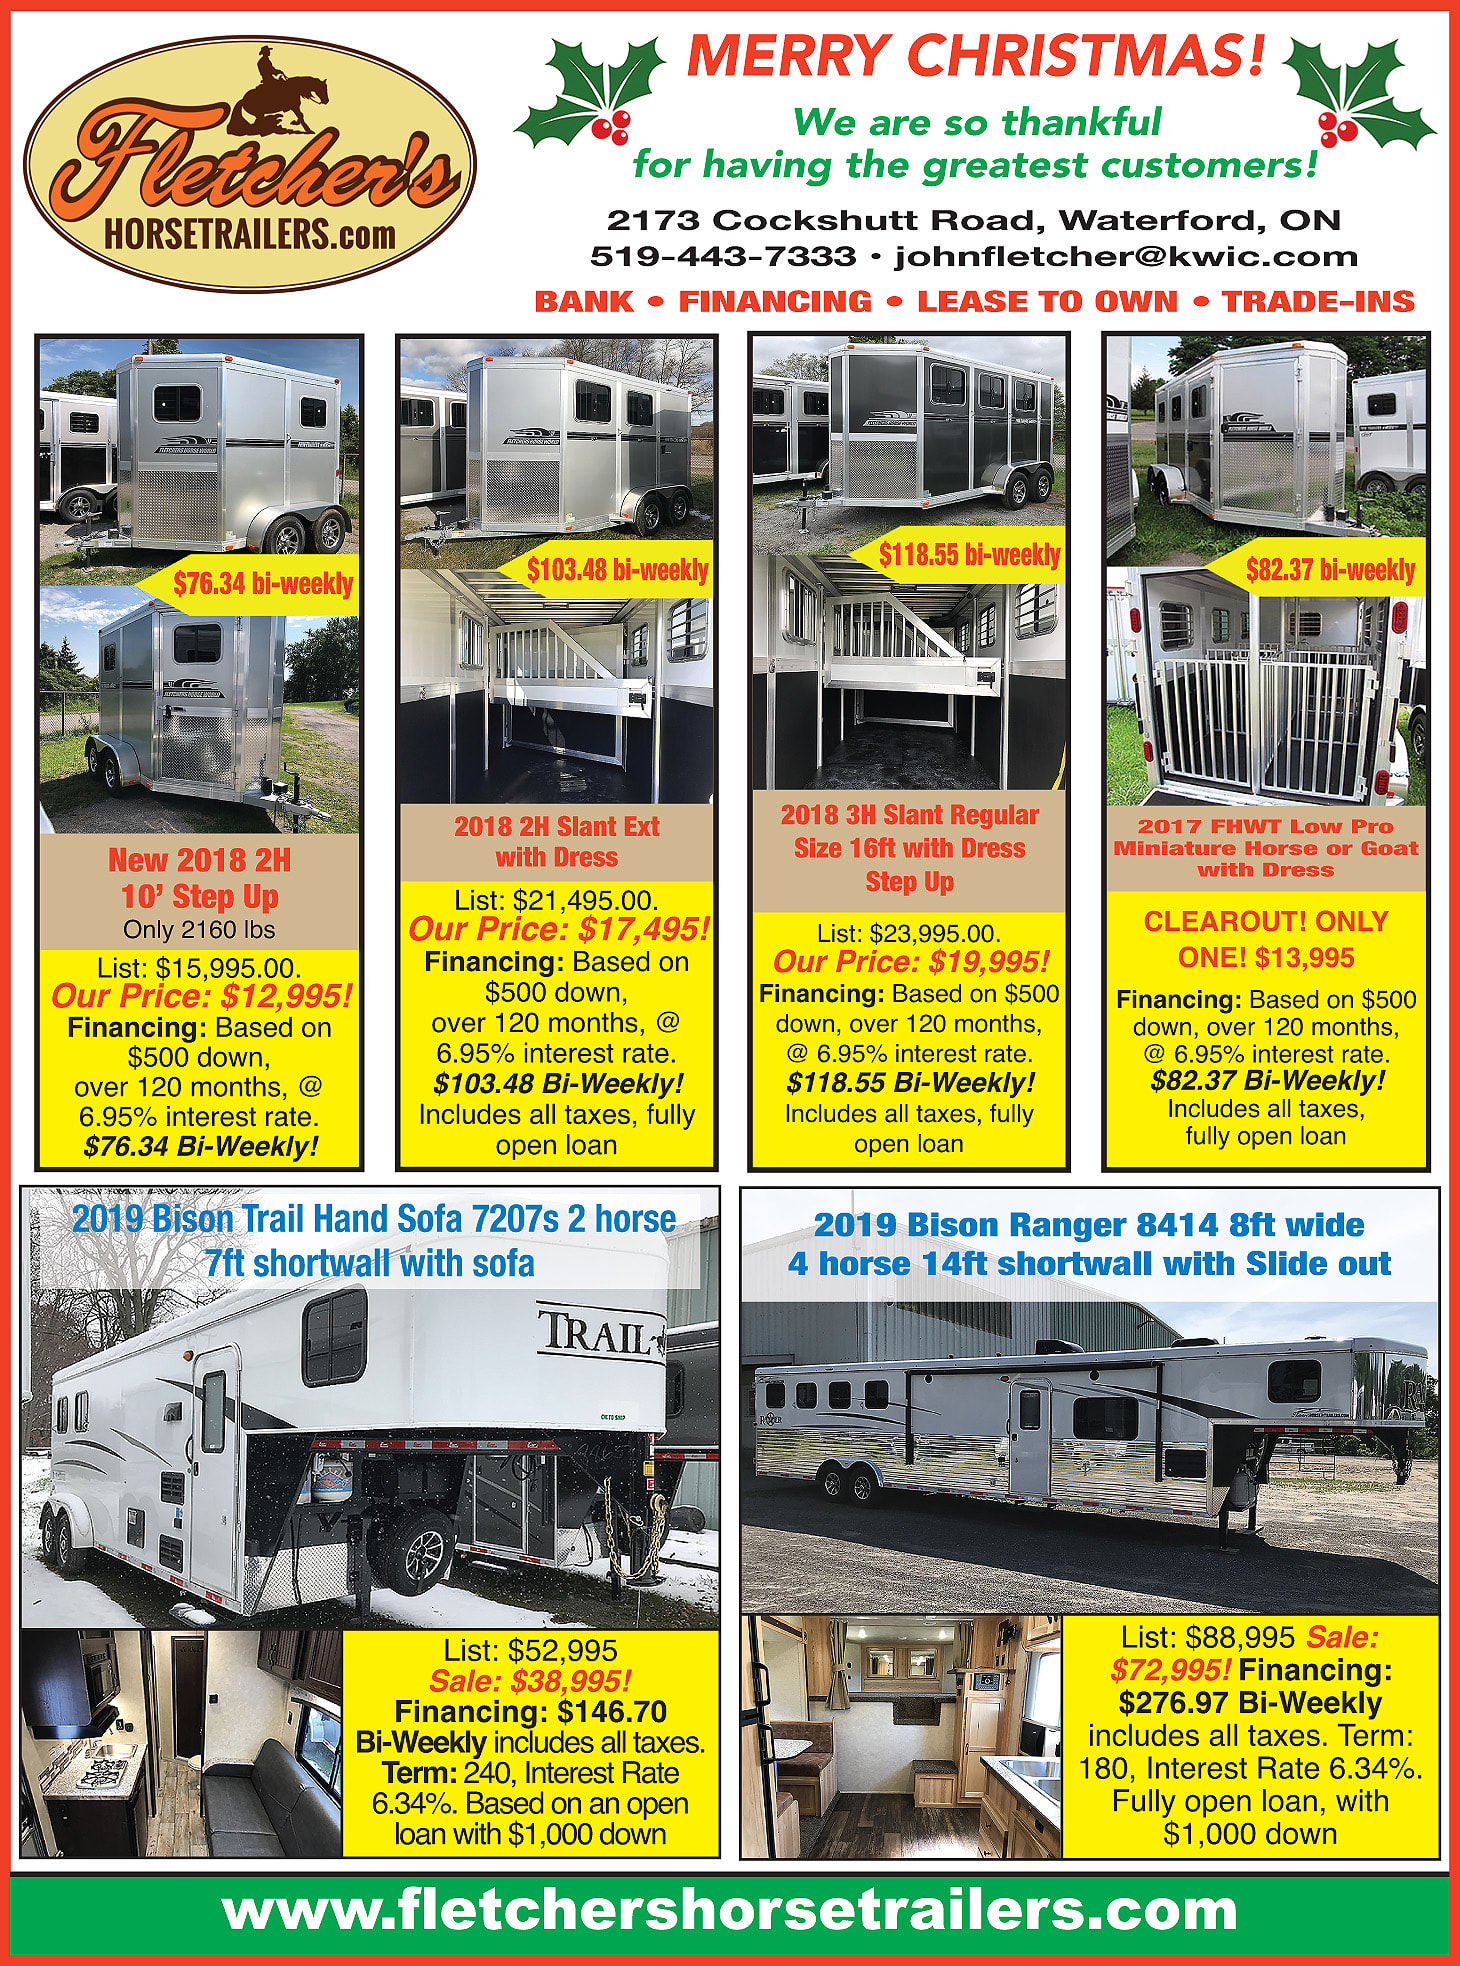 Fletcher's Horse Trailers